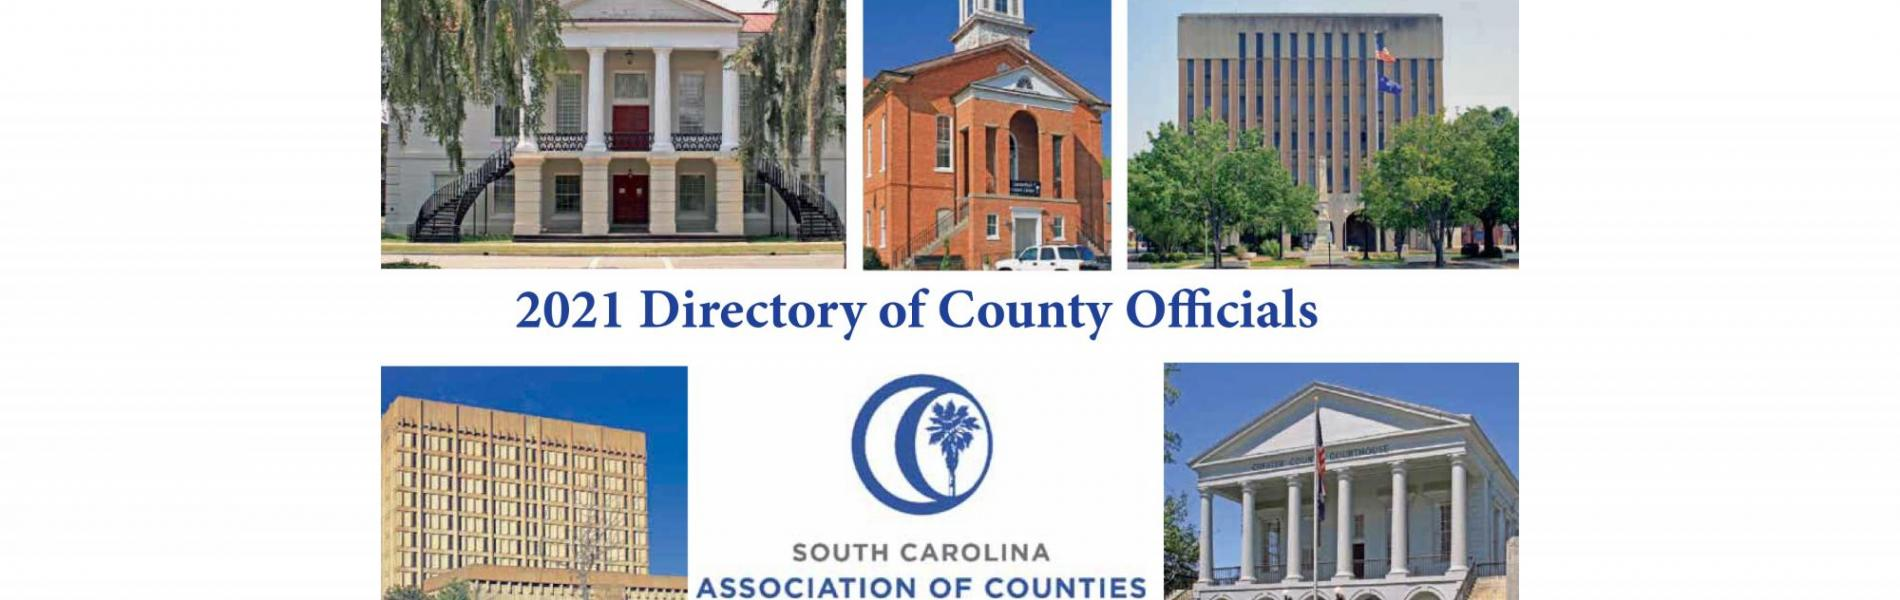 directory cover featuring county courthouses